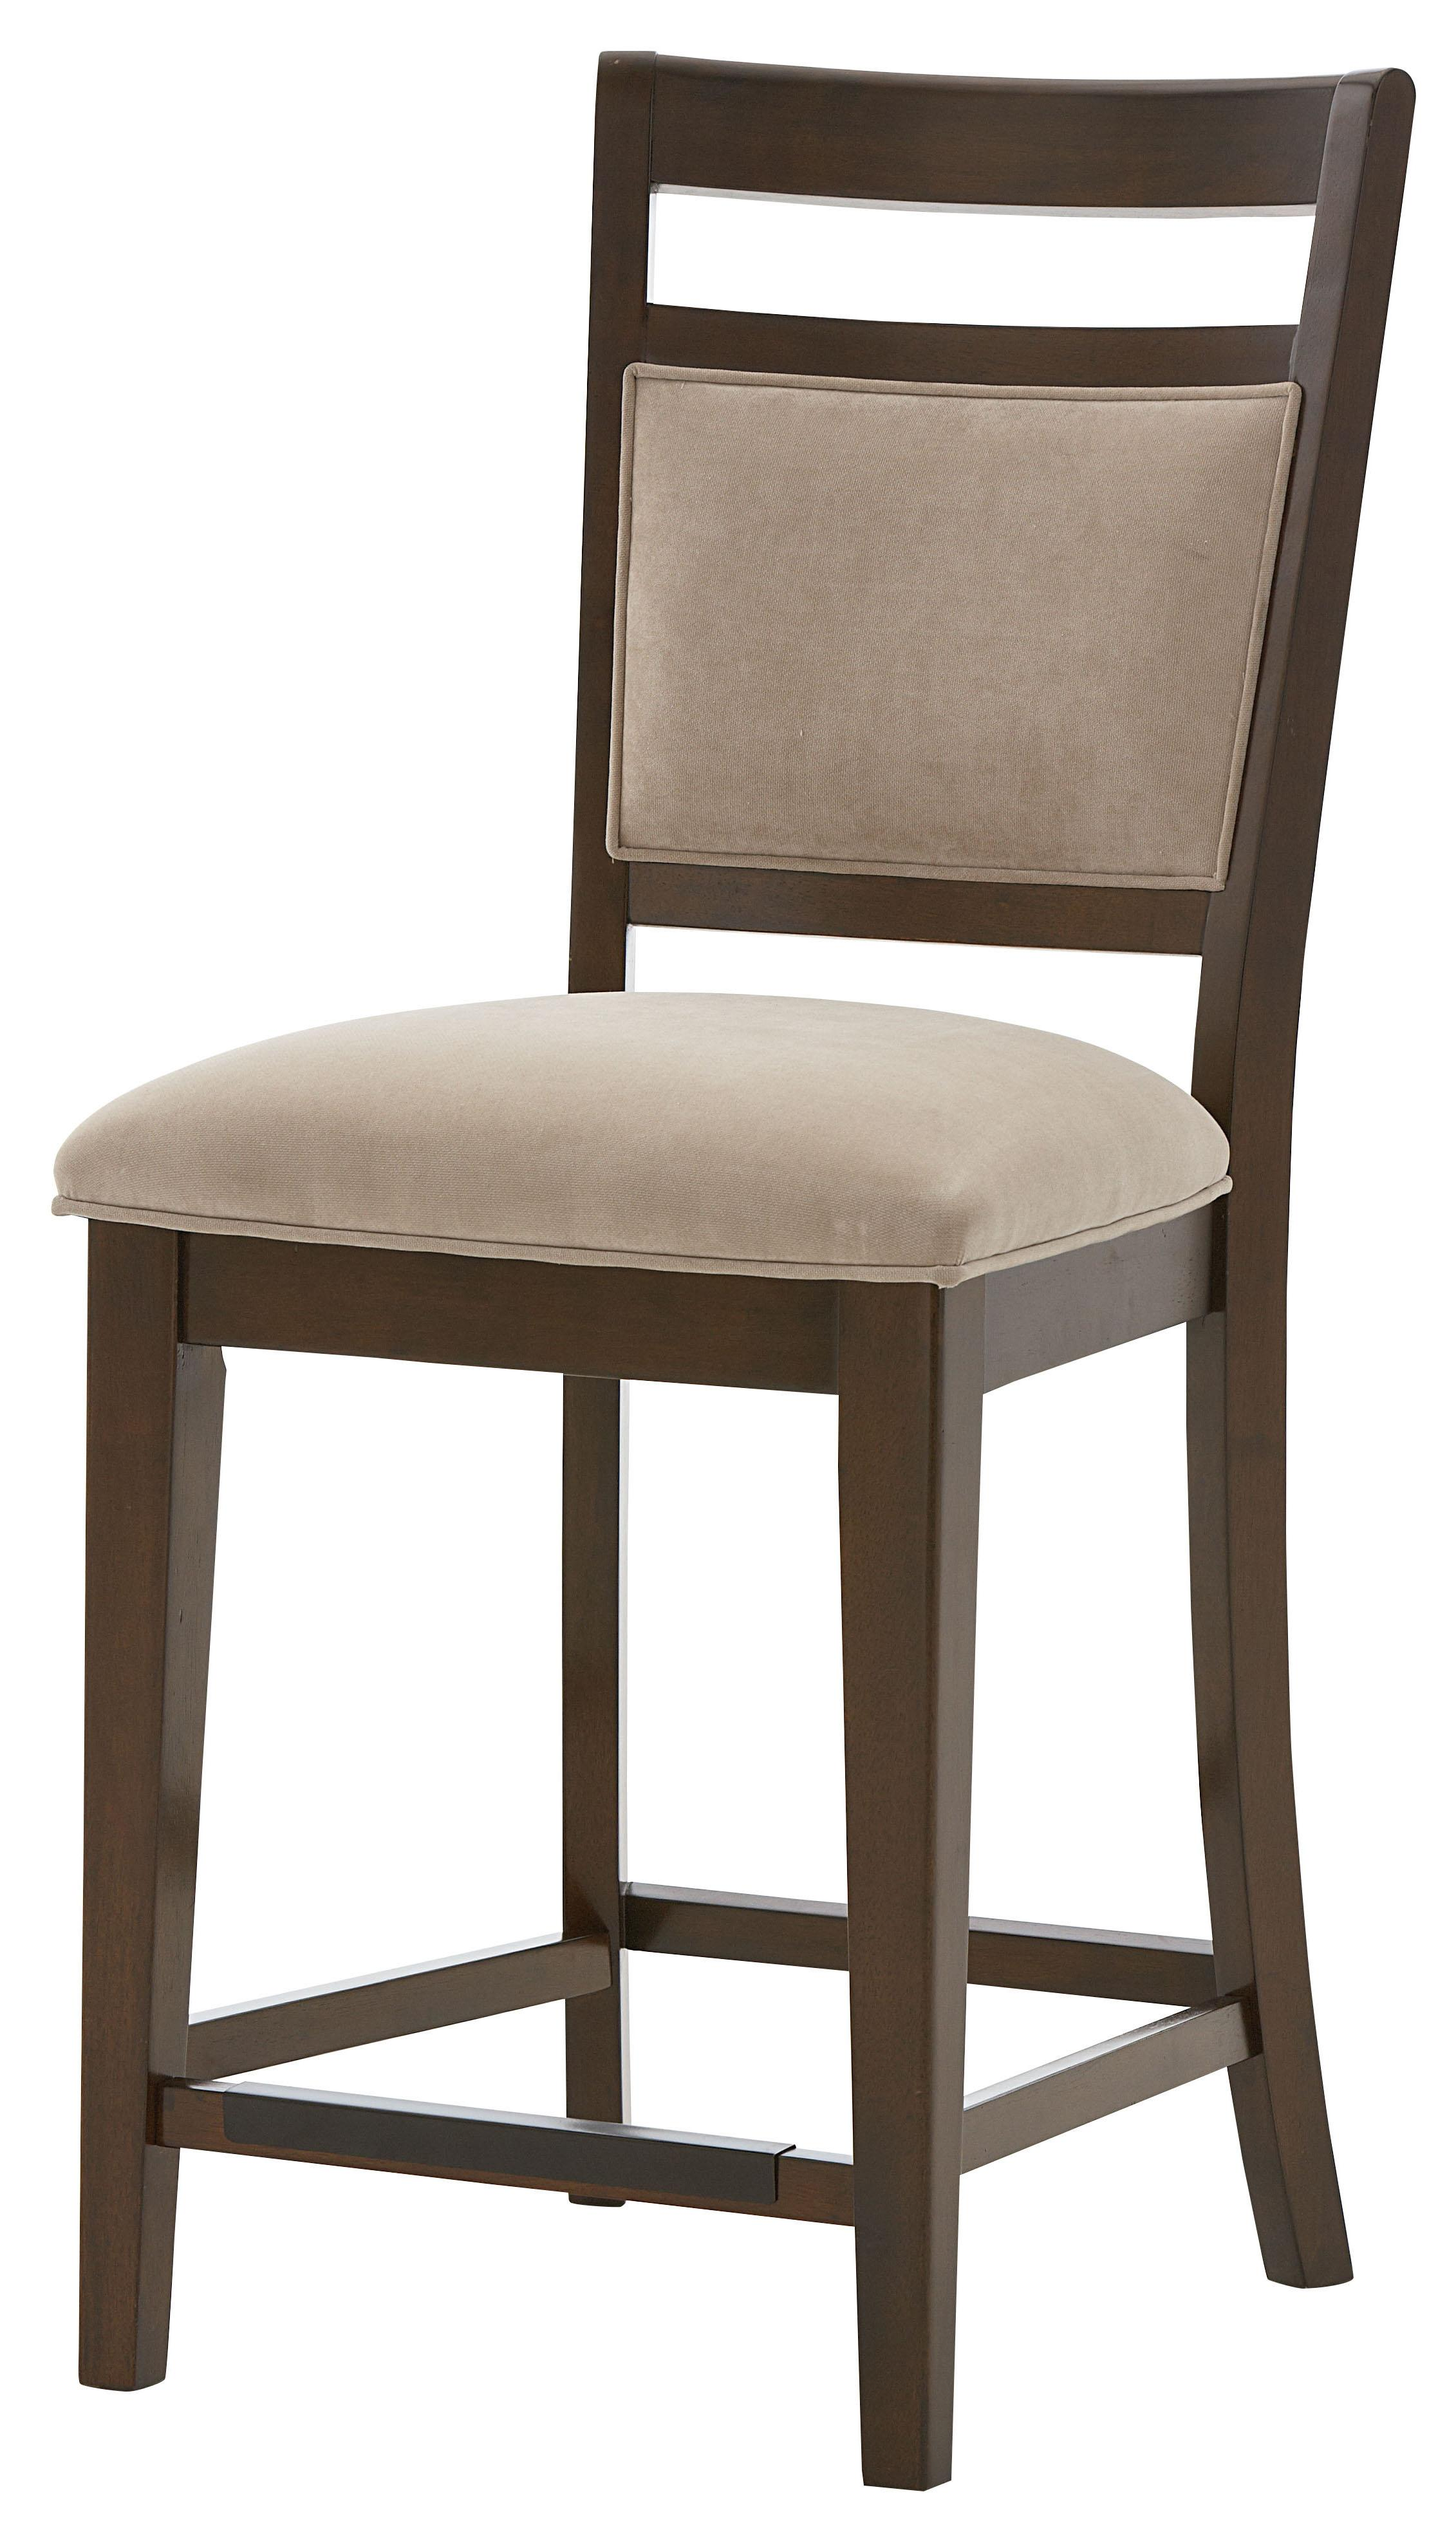 Counter Height Chair With Upholstered Seat And Back With